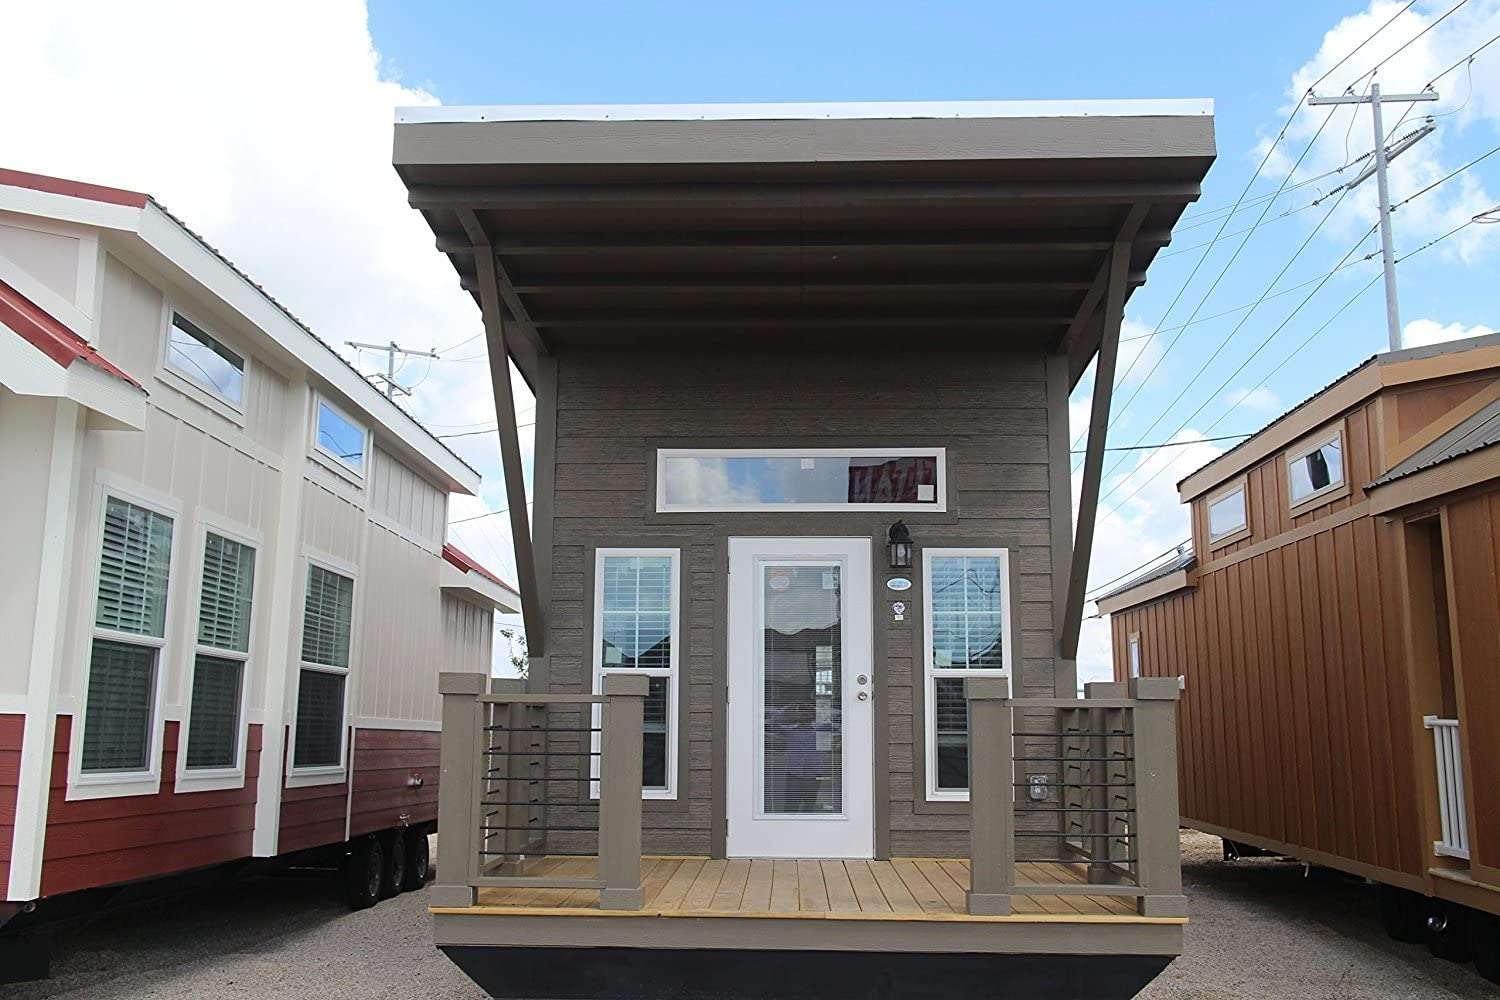 https://www.amazon.com/Tiny-Home-Ultimate-Vacation-Weekend/dp/B0771NM4R5/ref=sr_1_36?keywords=tiny+homes&qid=1569956425&sr=8-36&tag=bisafetynet2-20